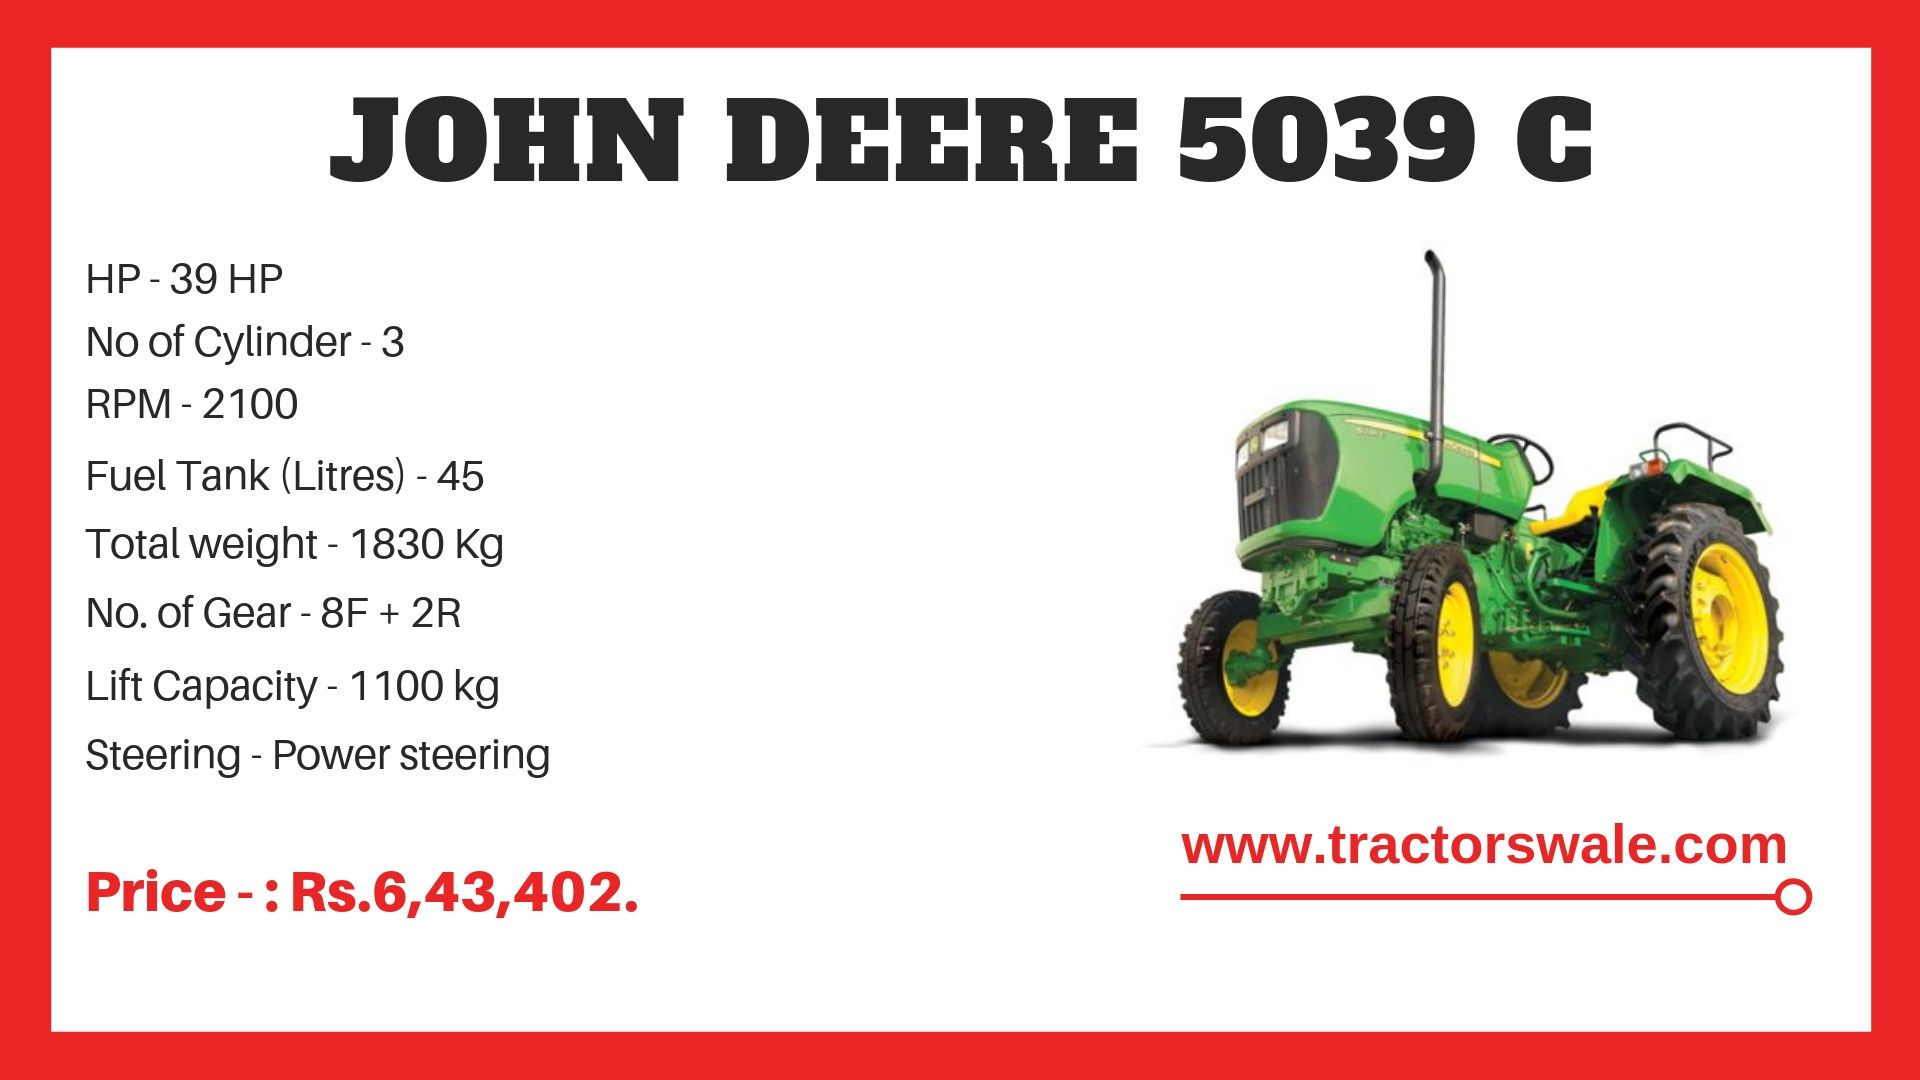 John Deere 5039 C Specifications